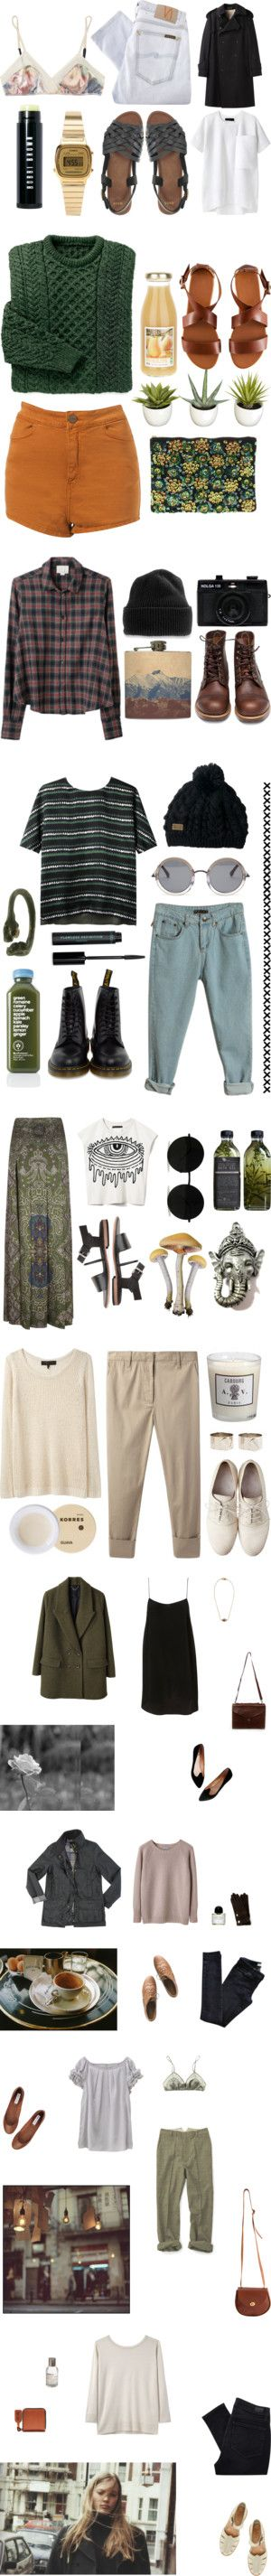 """""""Real-Life Nomad"""" by natalieoffduty ❤ liked on Polyvore"""